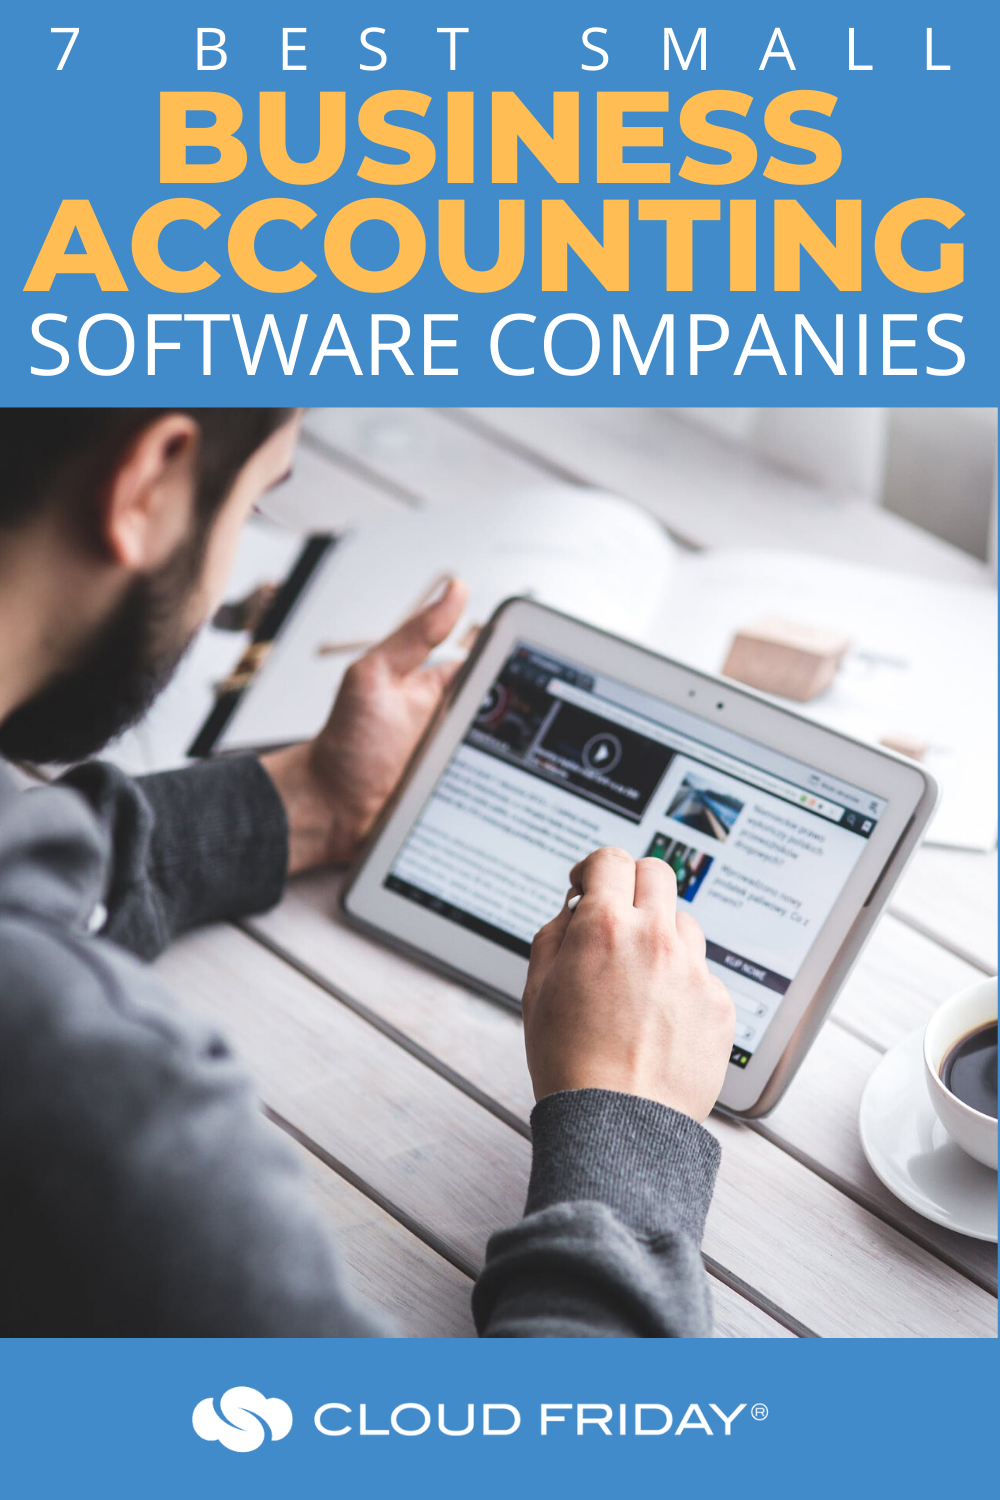 The 7 Best Small Business Accounting Software Companies Accounting And Fi Small Business Accounting Software Business Accounting Software Accounting Software